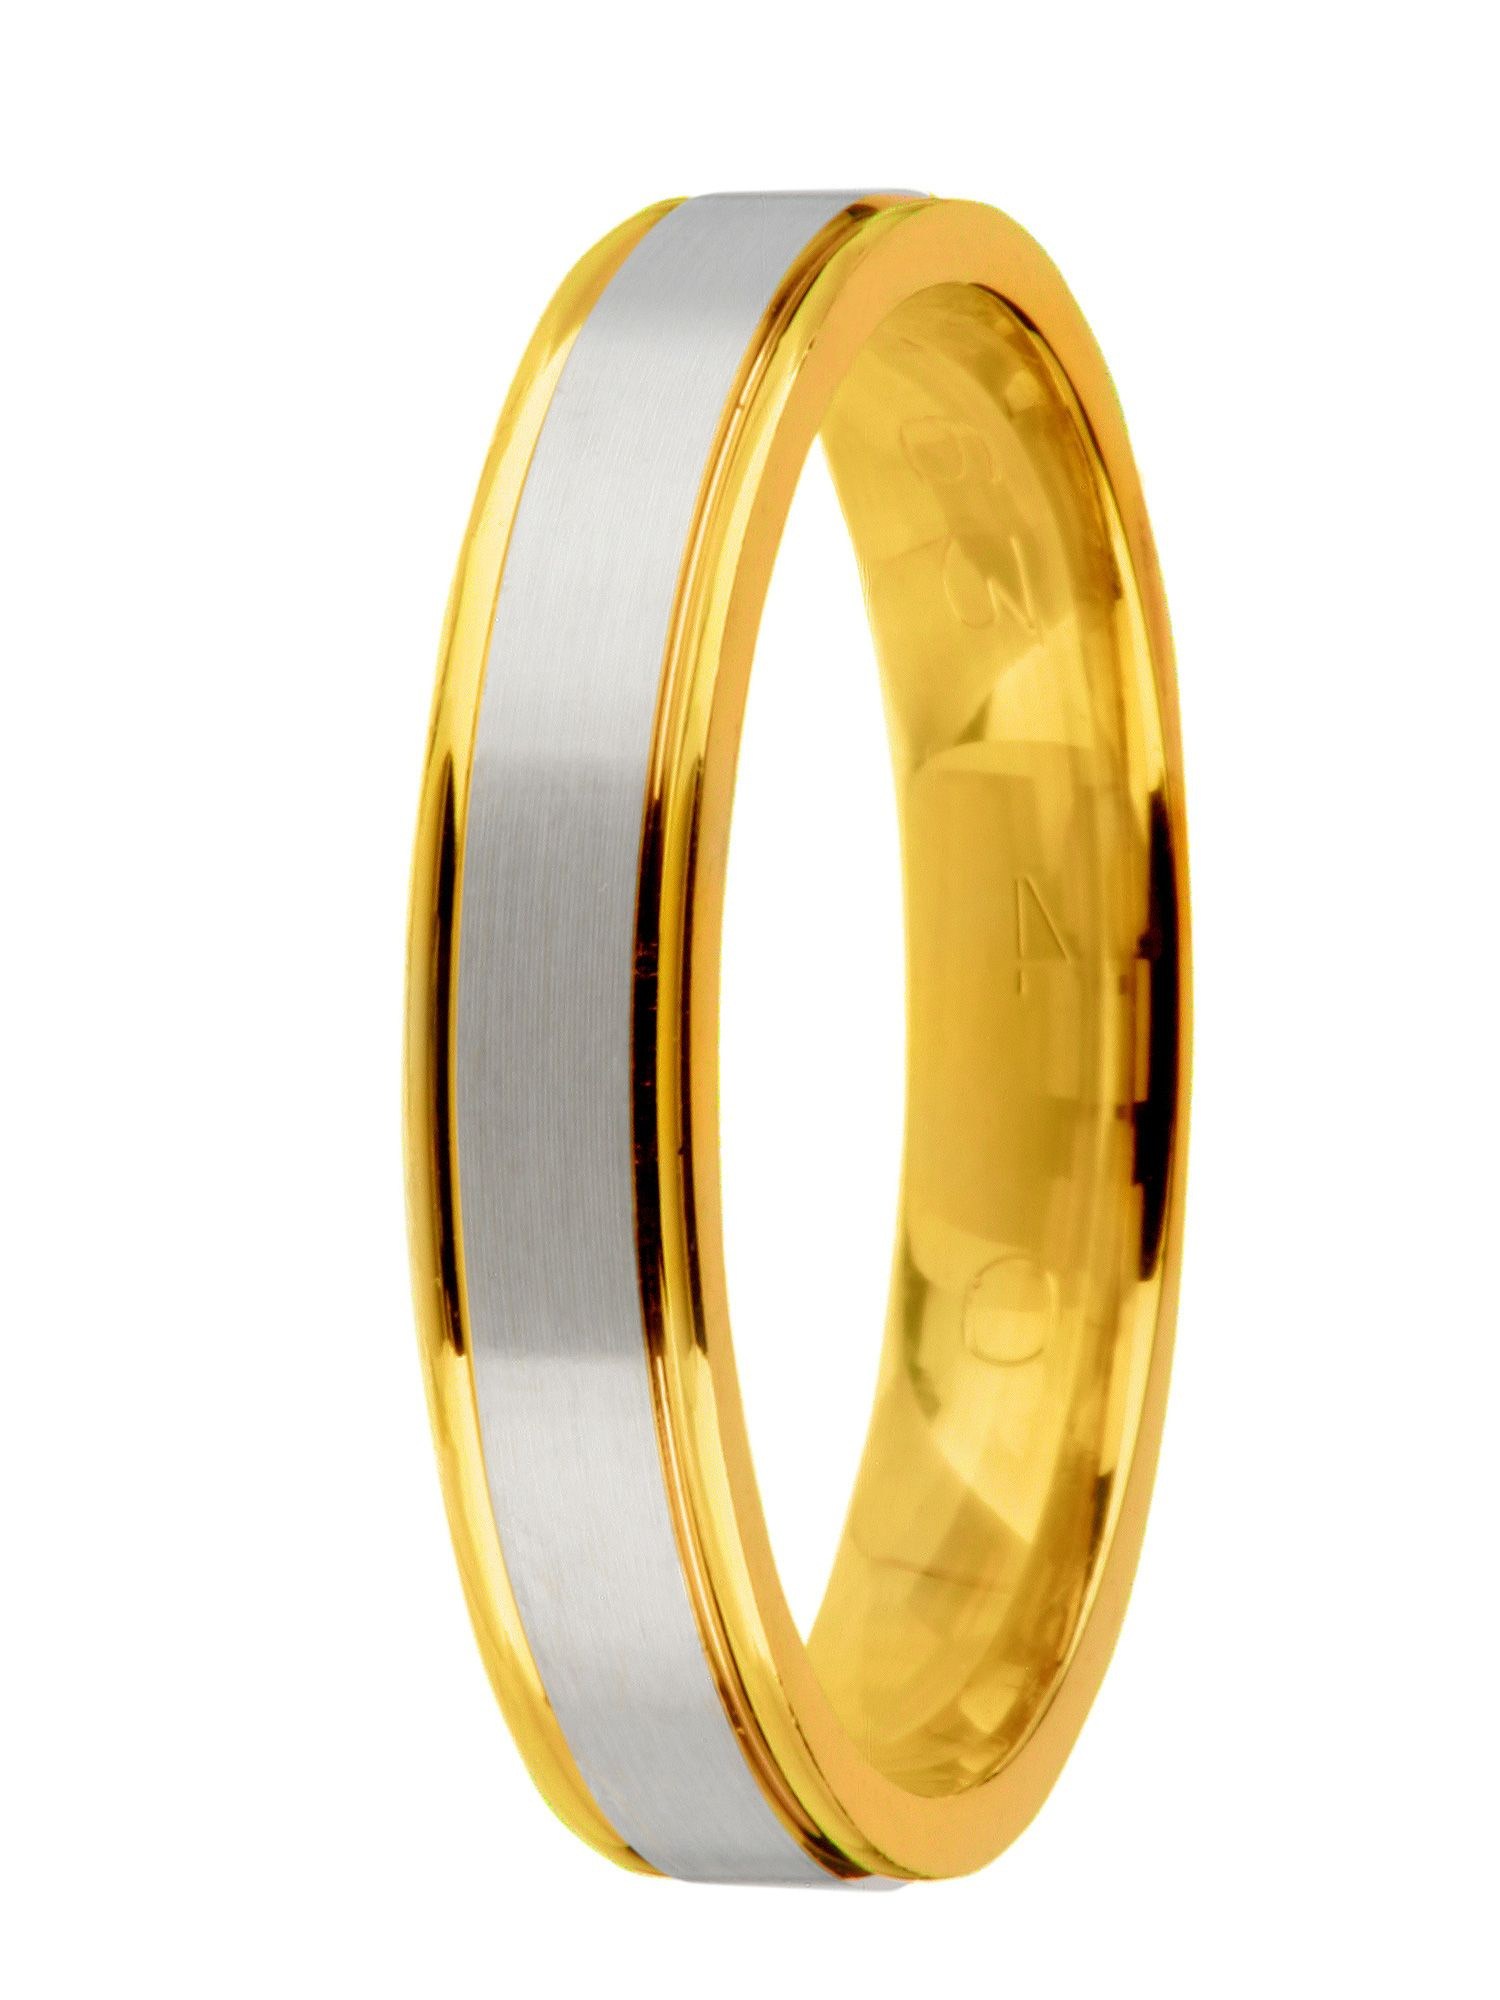 Grooms 18ct 2 colour gold wedding ring - Multi-Coloured